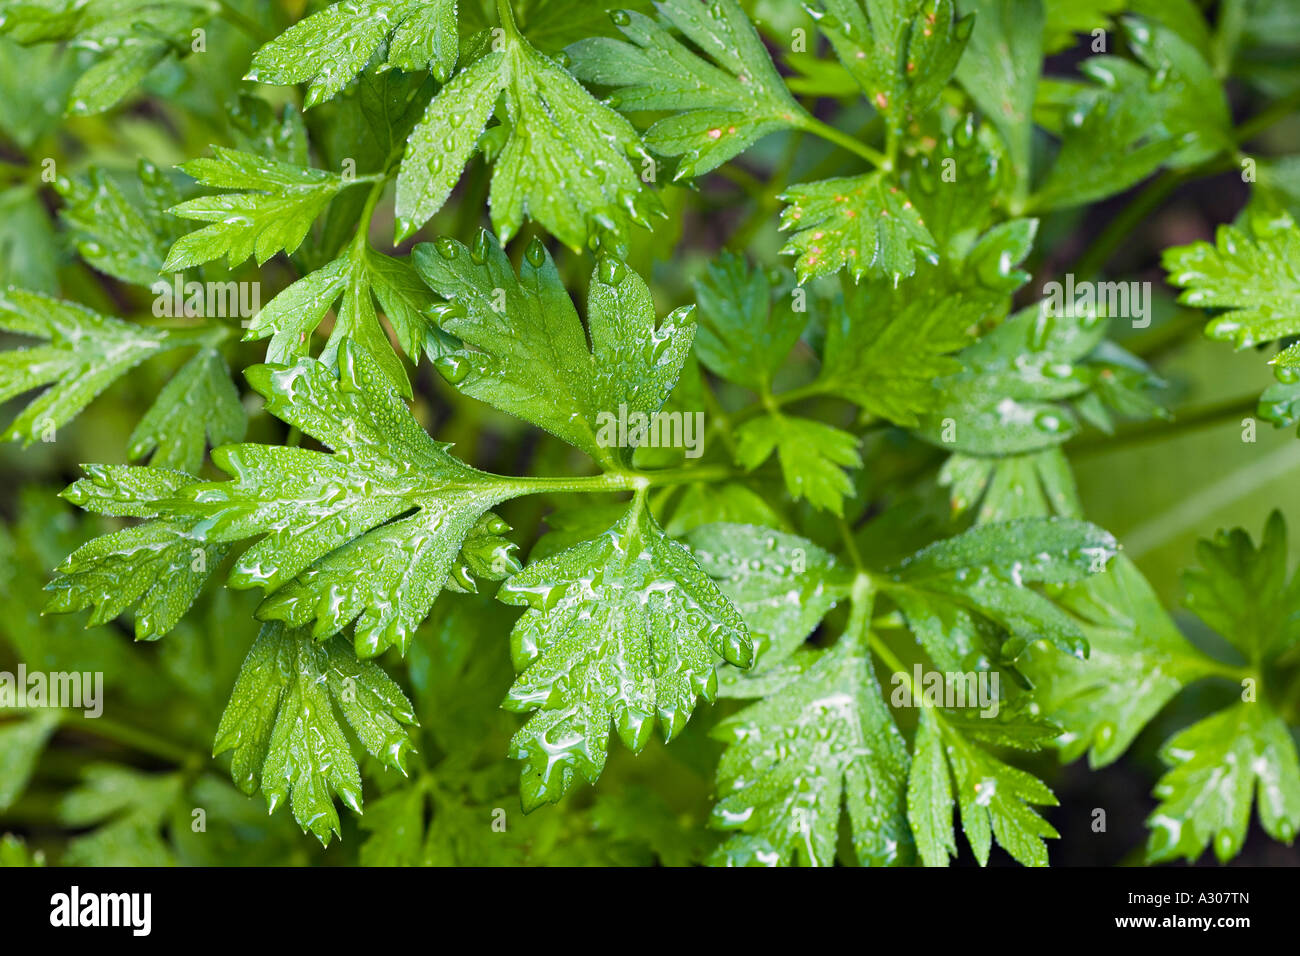 Kitchen Garden Herbs Vegetables Riverwoods Illinois Leaves On Parsley Plant With